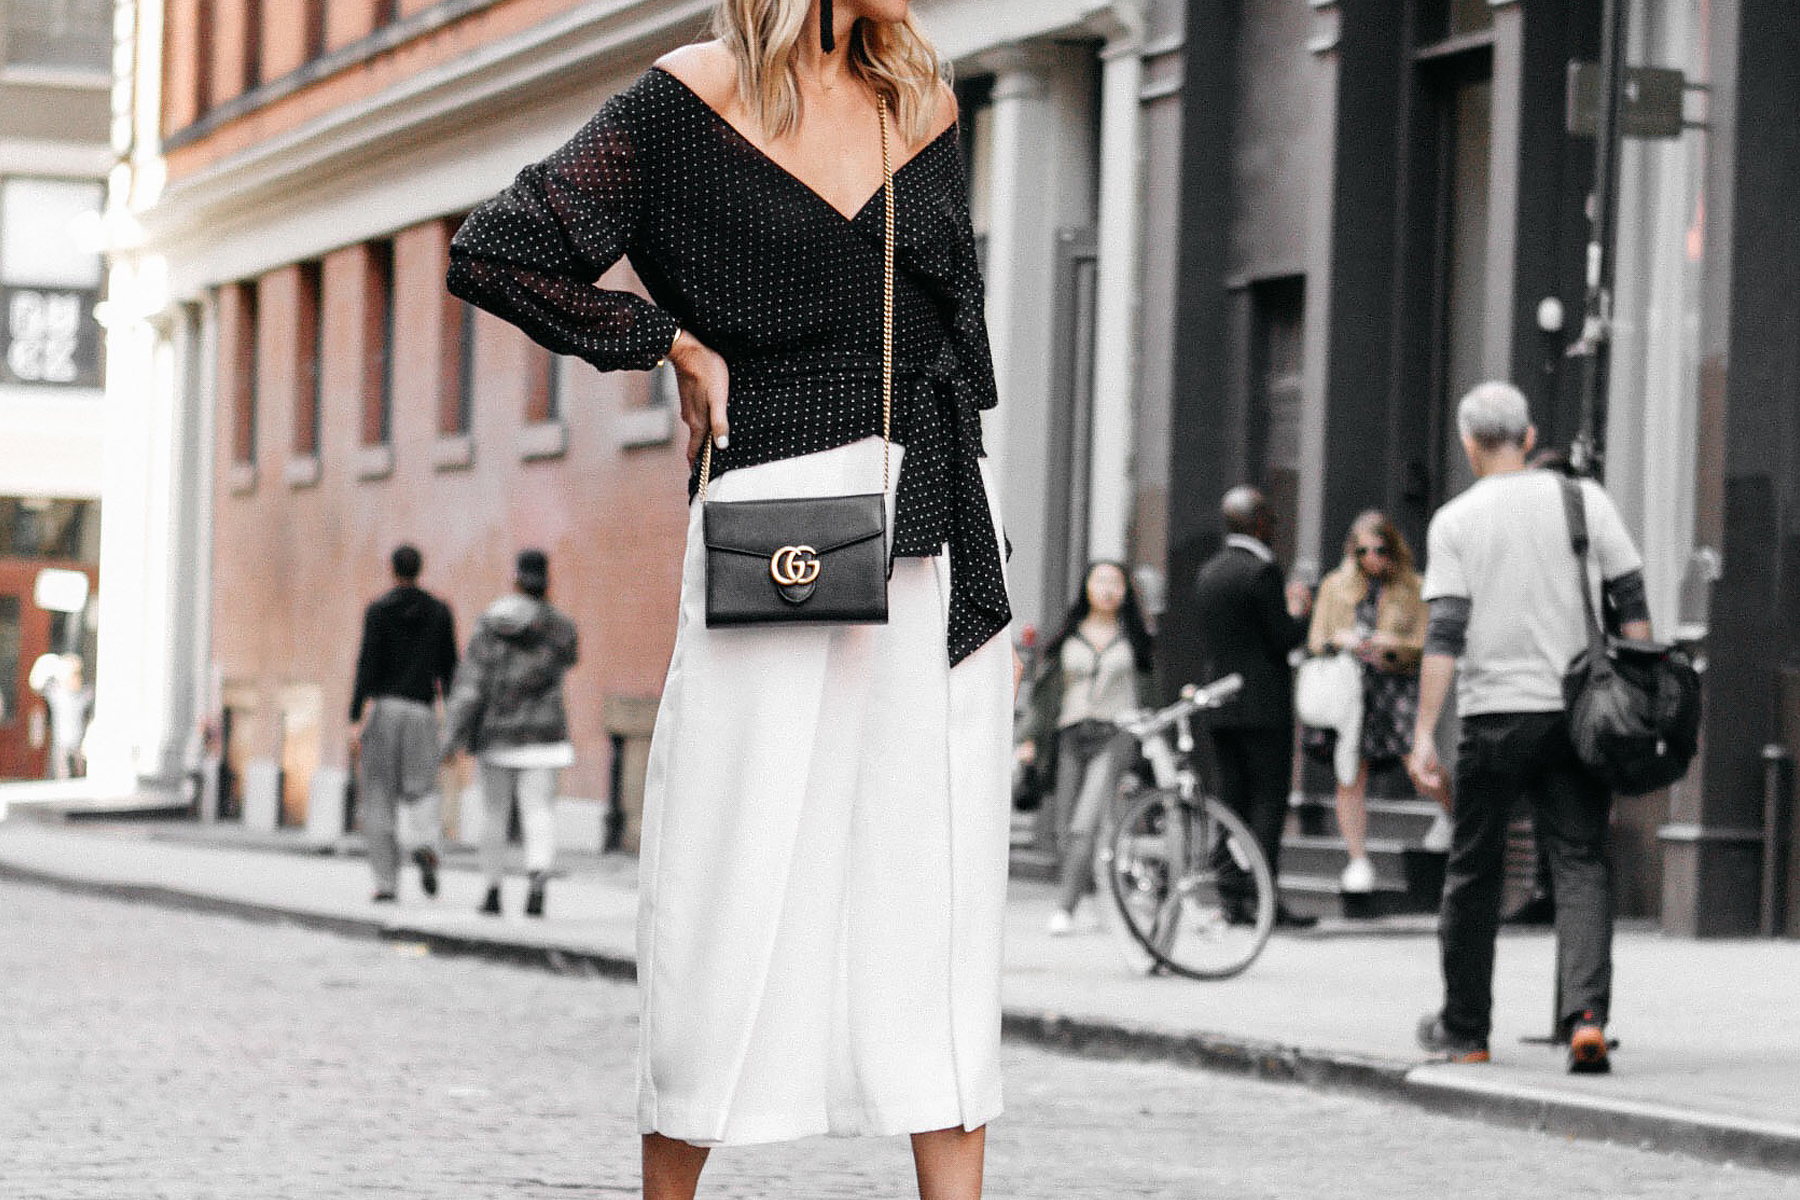 Club Monaco Black Wrap Top White Culottes Gucci Marmont Handbag Fashion Jackson Dallas Blogger Fashion Blogger Street Style NYFW